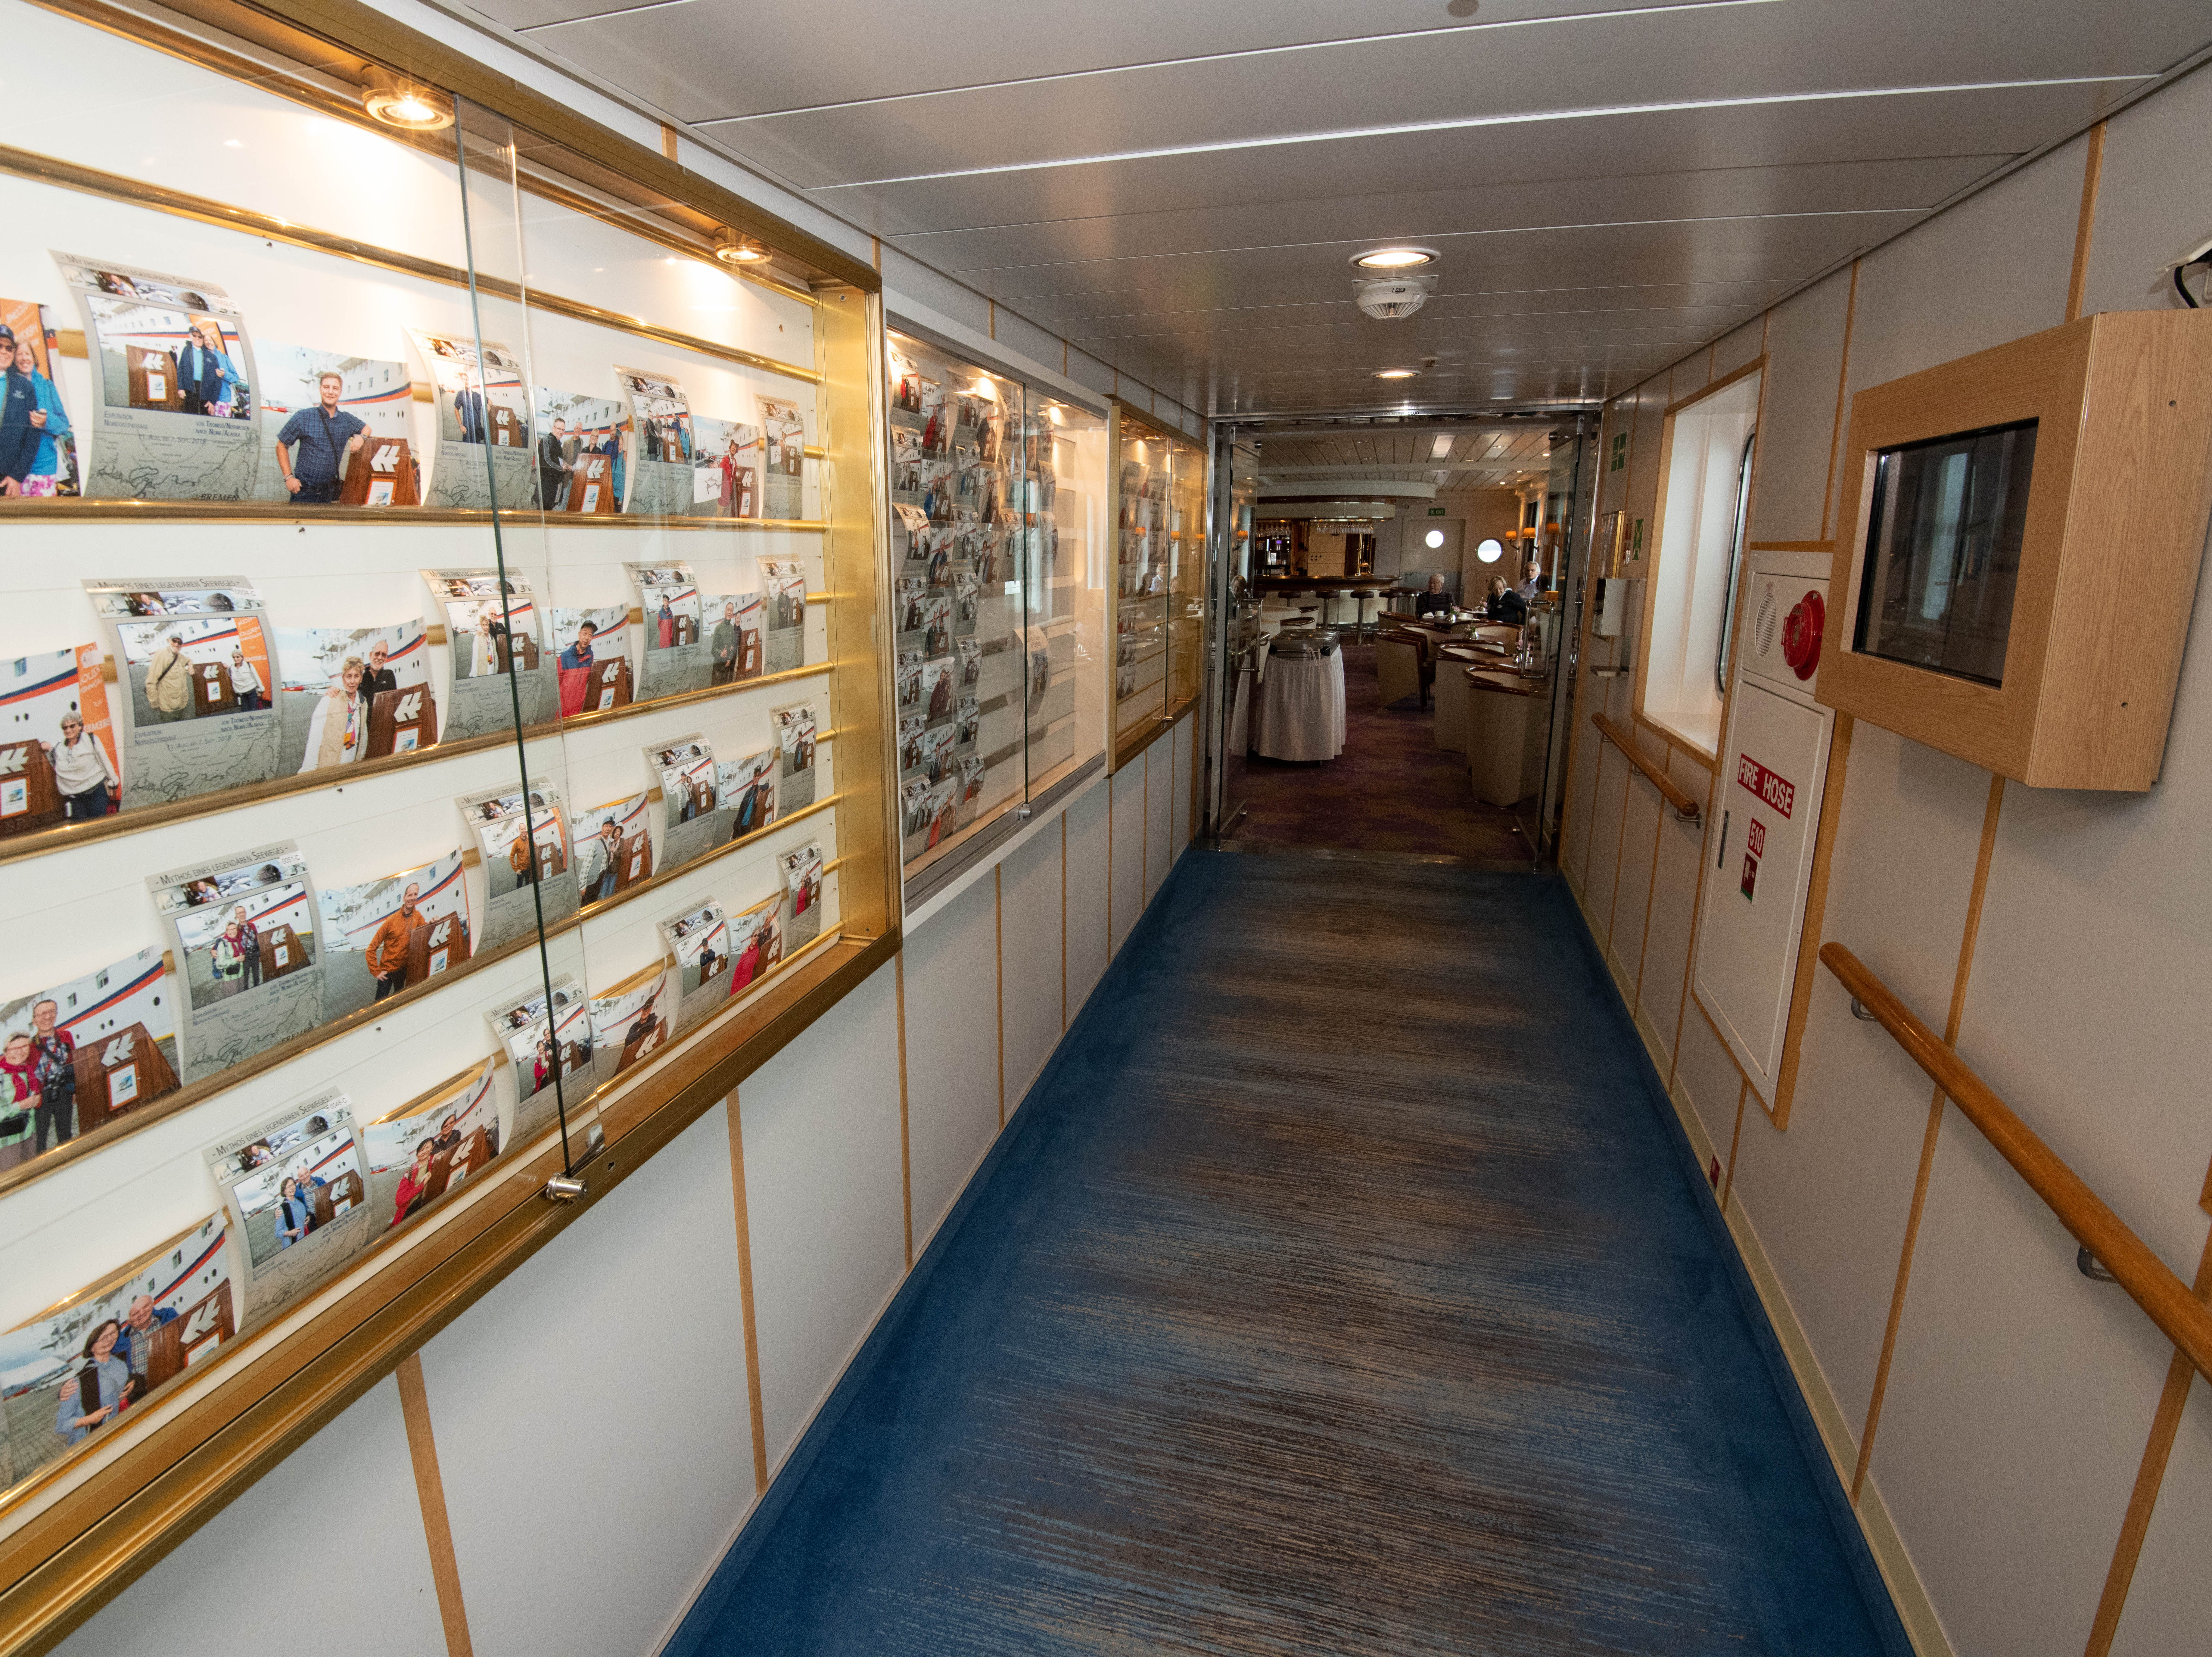 Just outside of the main dining room is a photo wall with for-purchase photos by the ship's photographer.